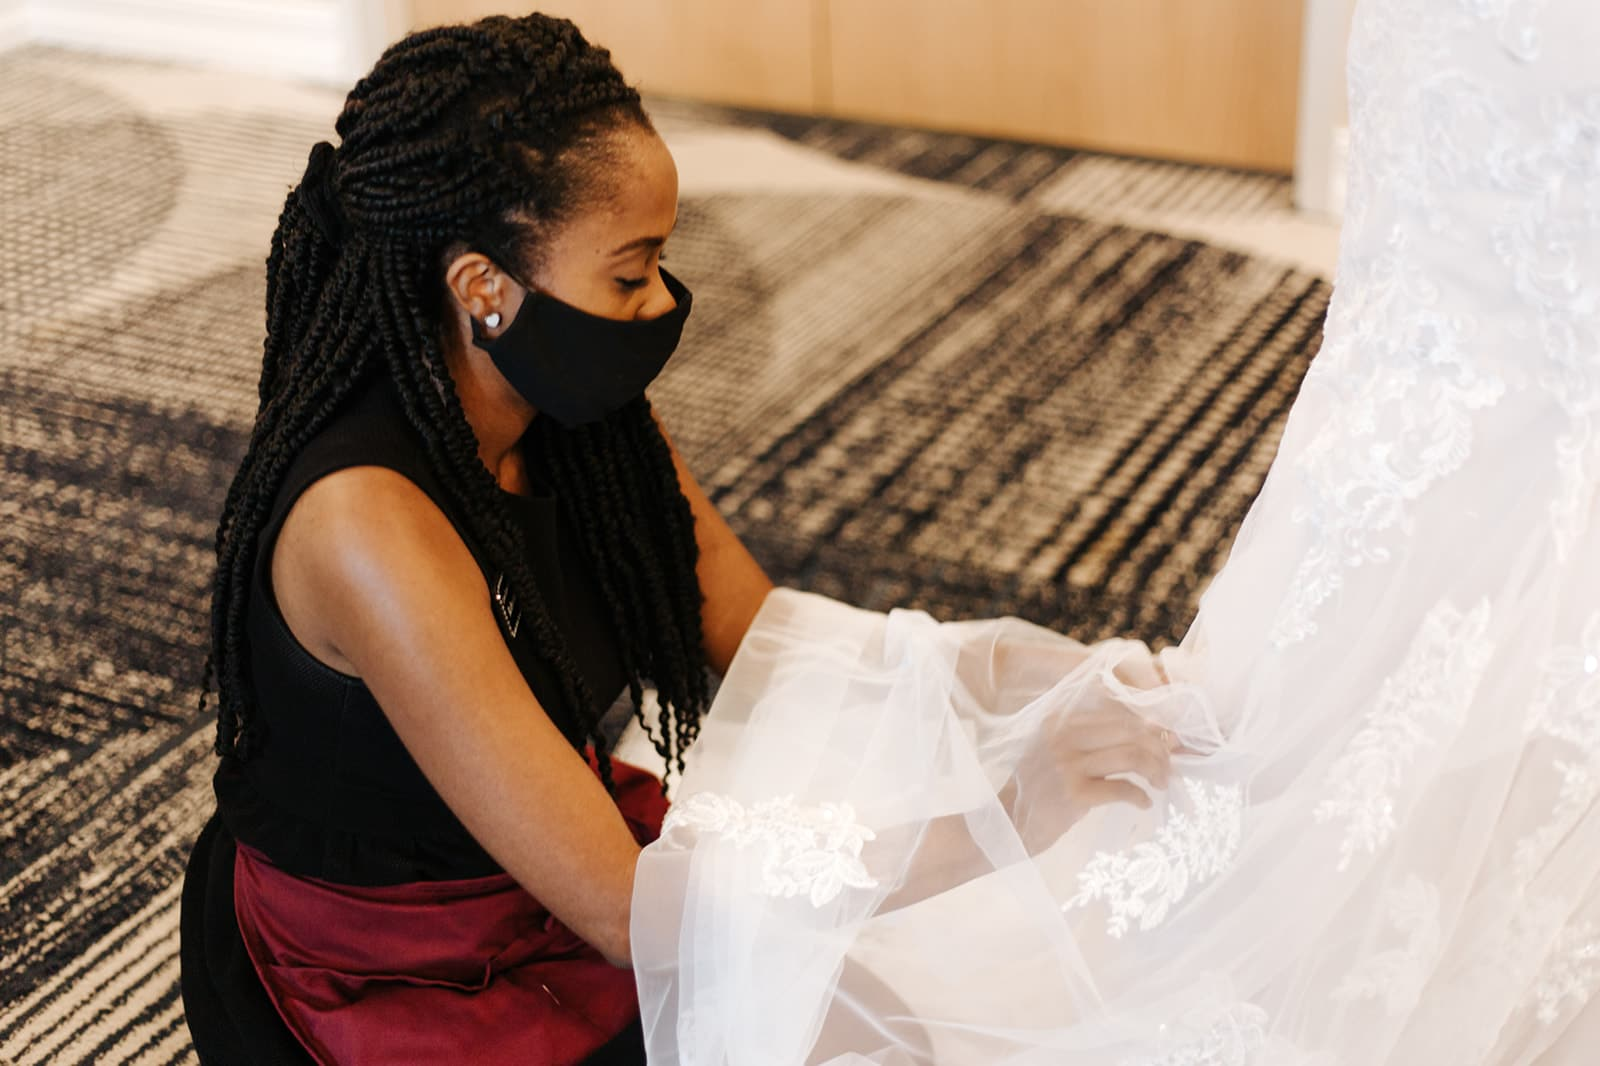 wedding planner crouches down near floor to gather the back of brides wedding gown and bustle it up while wearing face covering